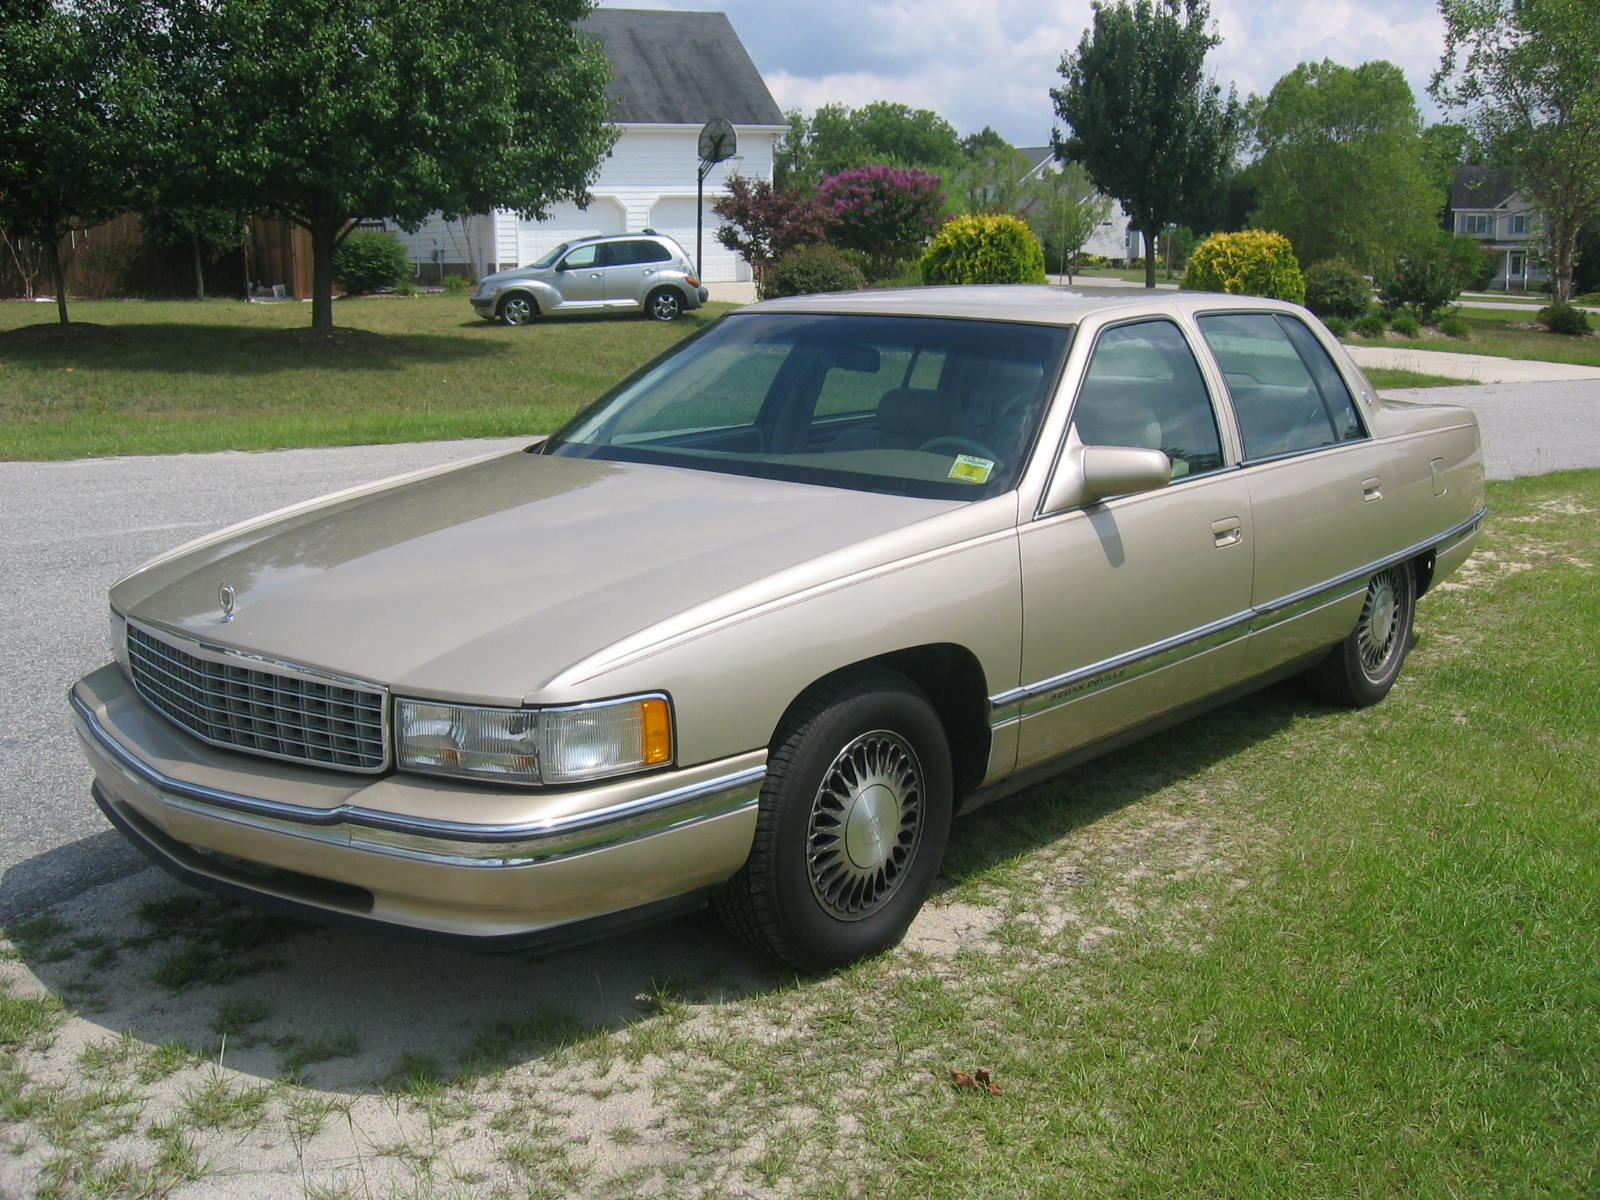 Picture of 1994 cadillac deville base sedan exterior gallery_worthy